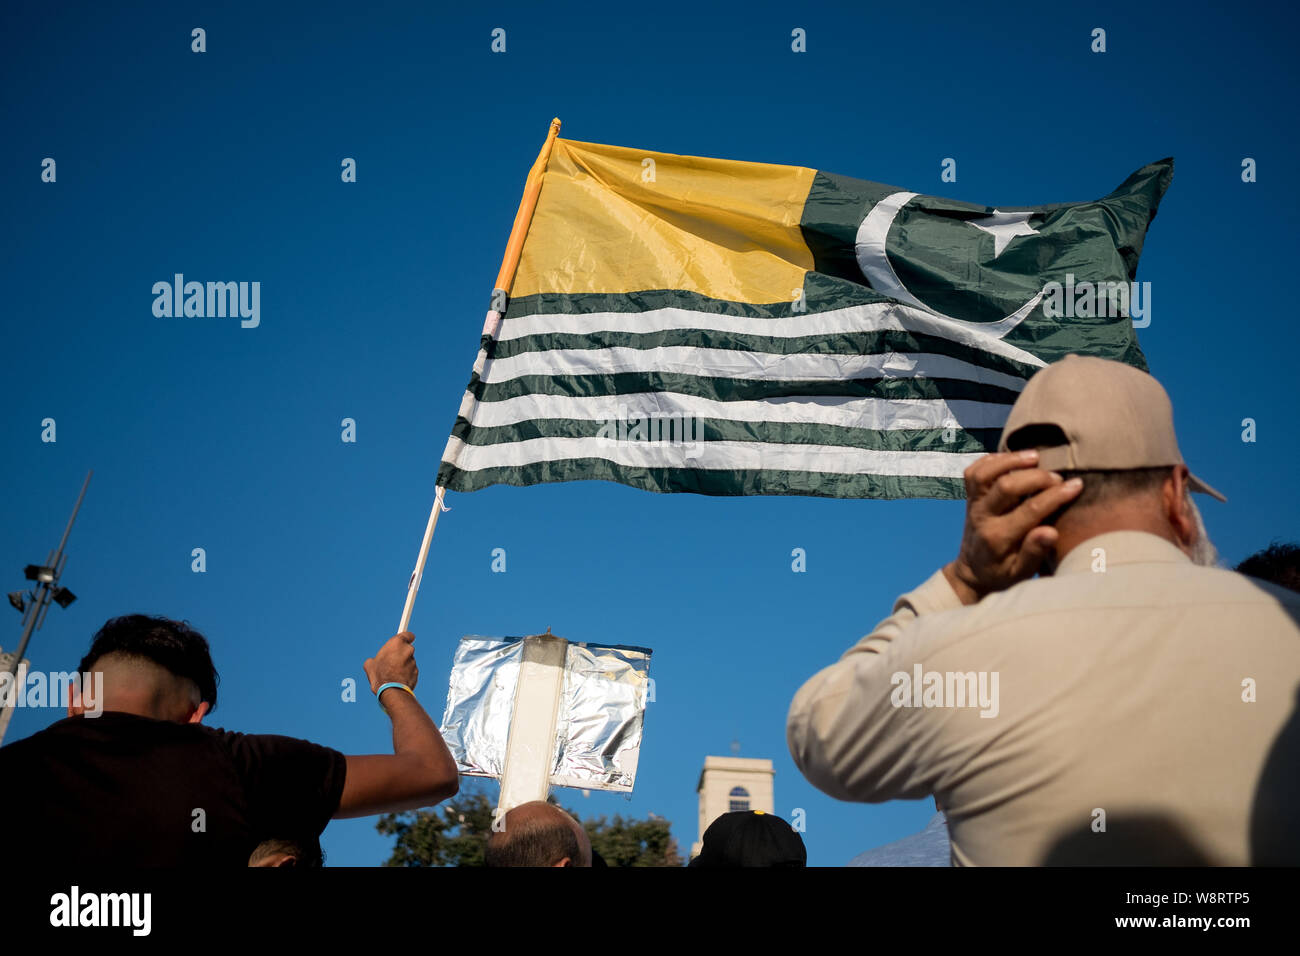 Barcelona, Spain - 10 august 2019: Kashmir and pakistani nationals march and demonstrate against indian cancellation of autonomous region status with Stock Photo